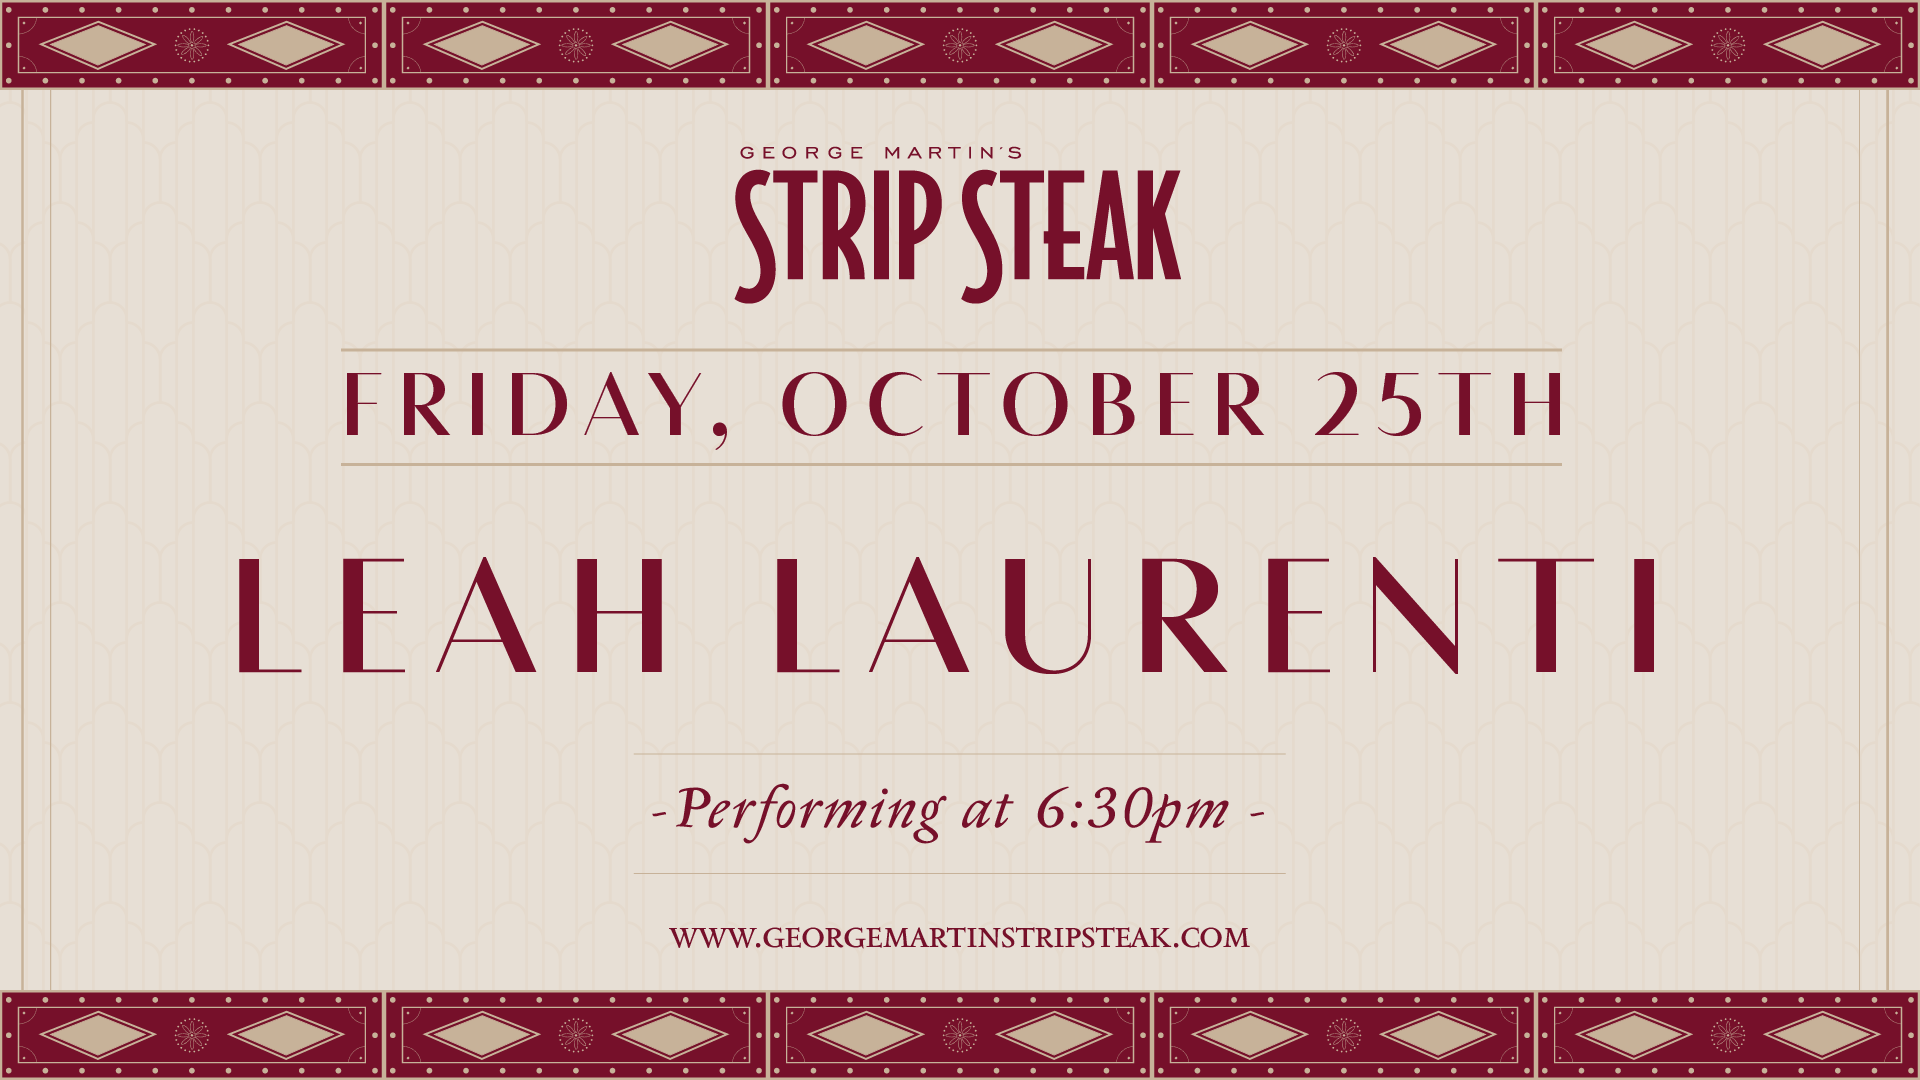 Flyer for Live Music with Leah Laurenti at Strip Steak on Friday, October 25th at 6:30pm.